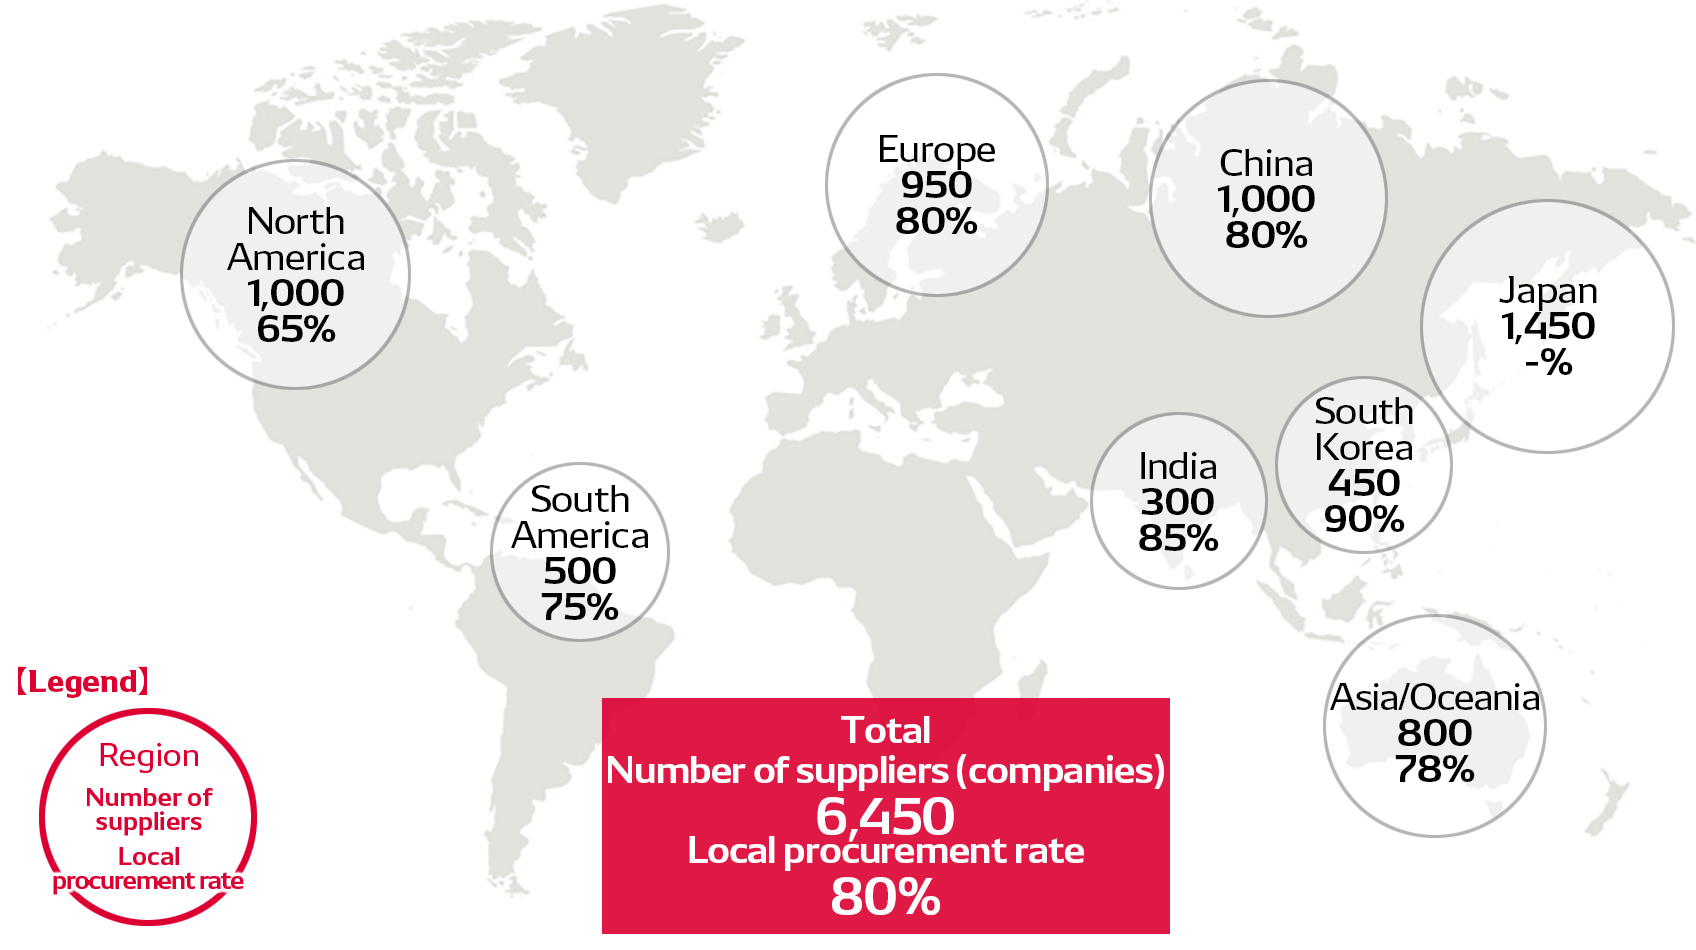 Number of Regional Suppliers/Local Procurement Rate